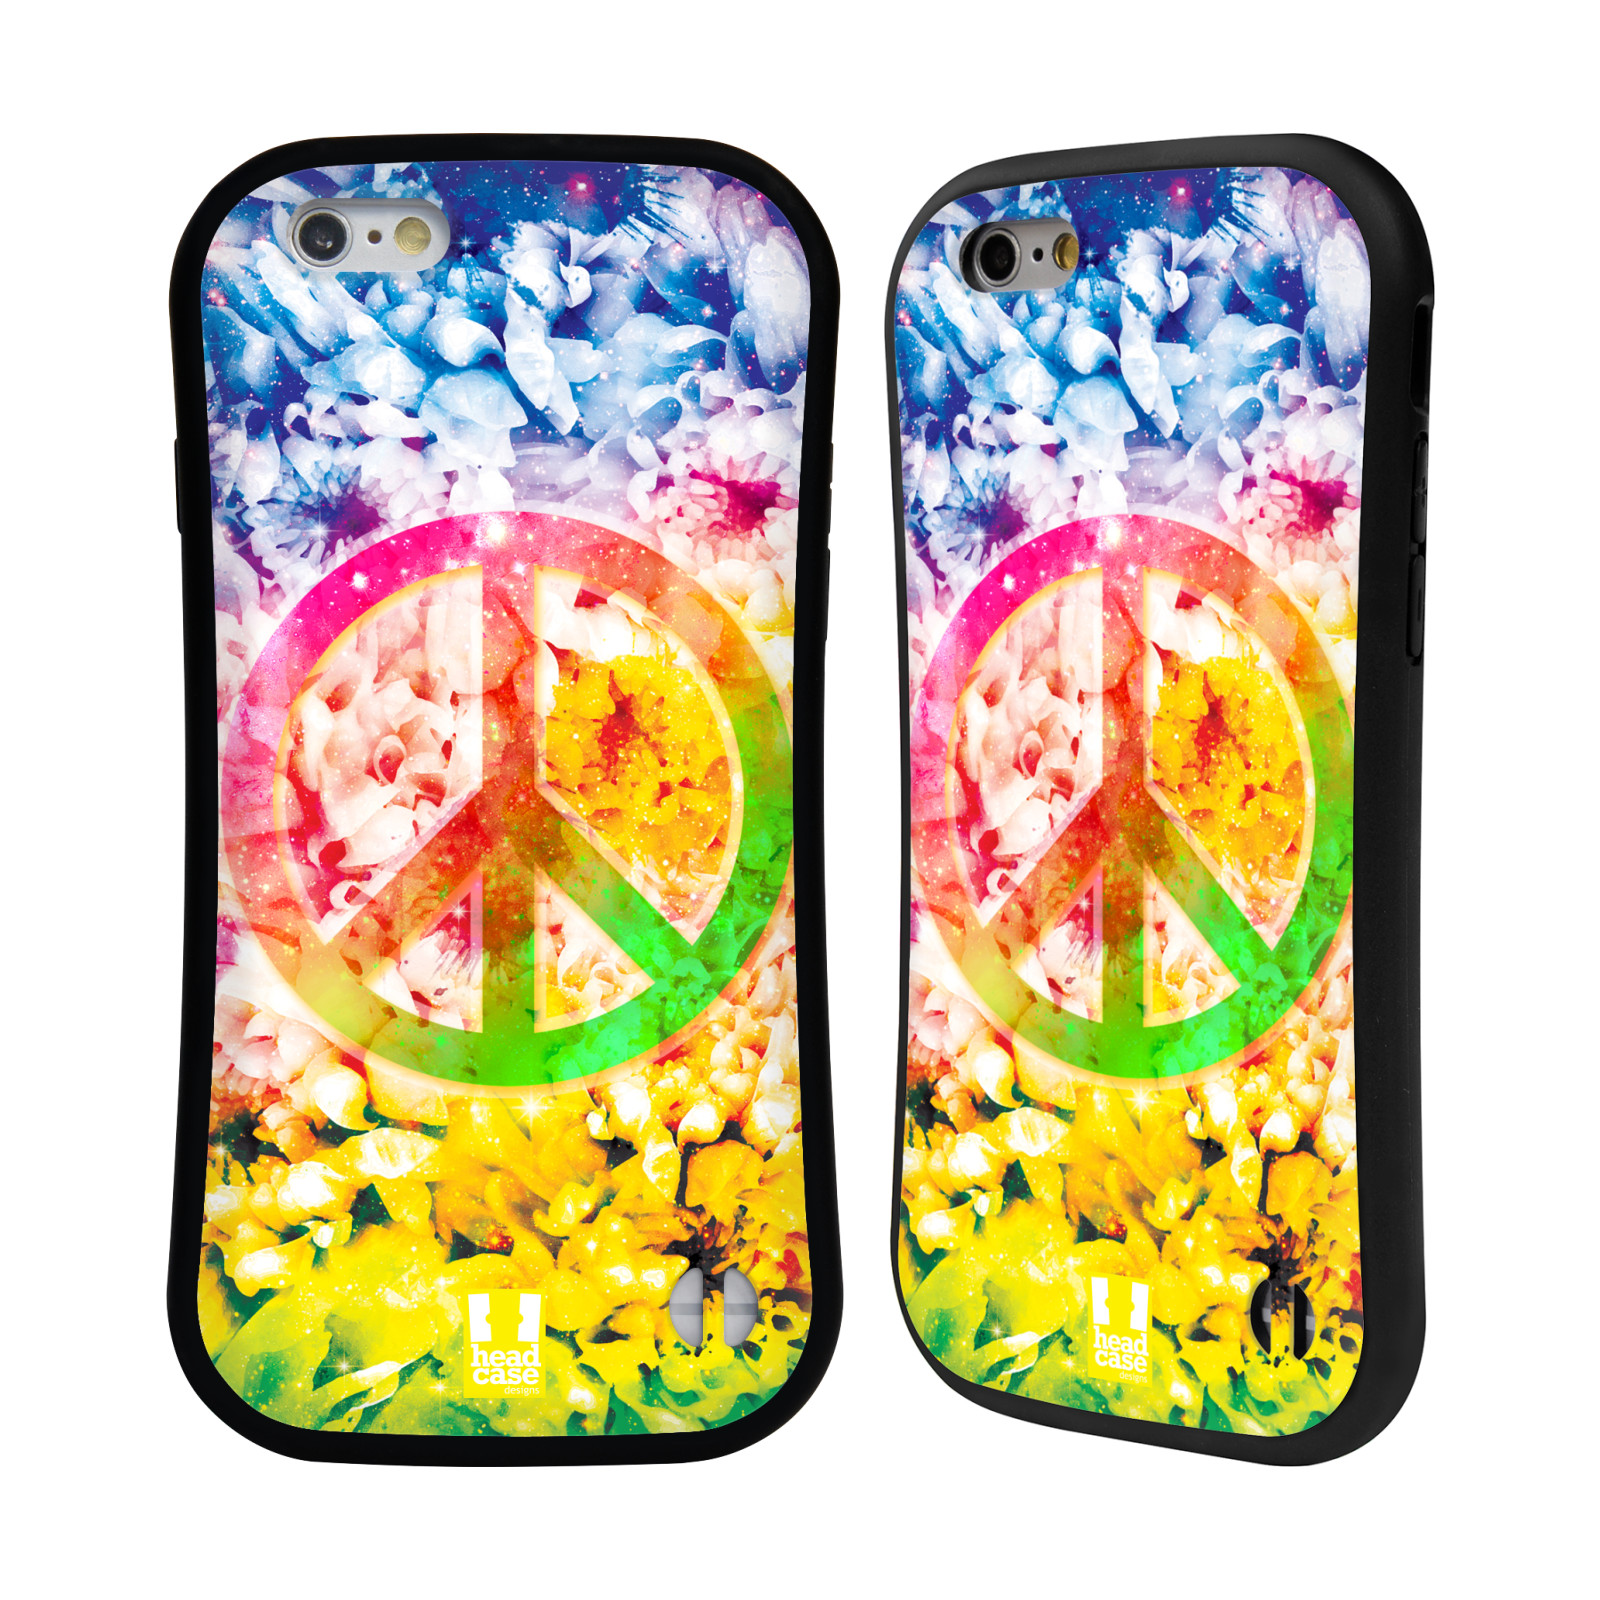 HEAD-CASE-DESIGNS-PSYCHEDELISCH-BLUMIG-HYBRID-HULLE-FUR-APPLE-iPHONES-HANDYS